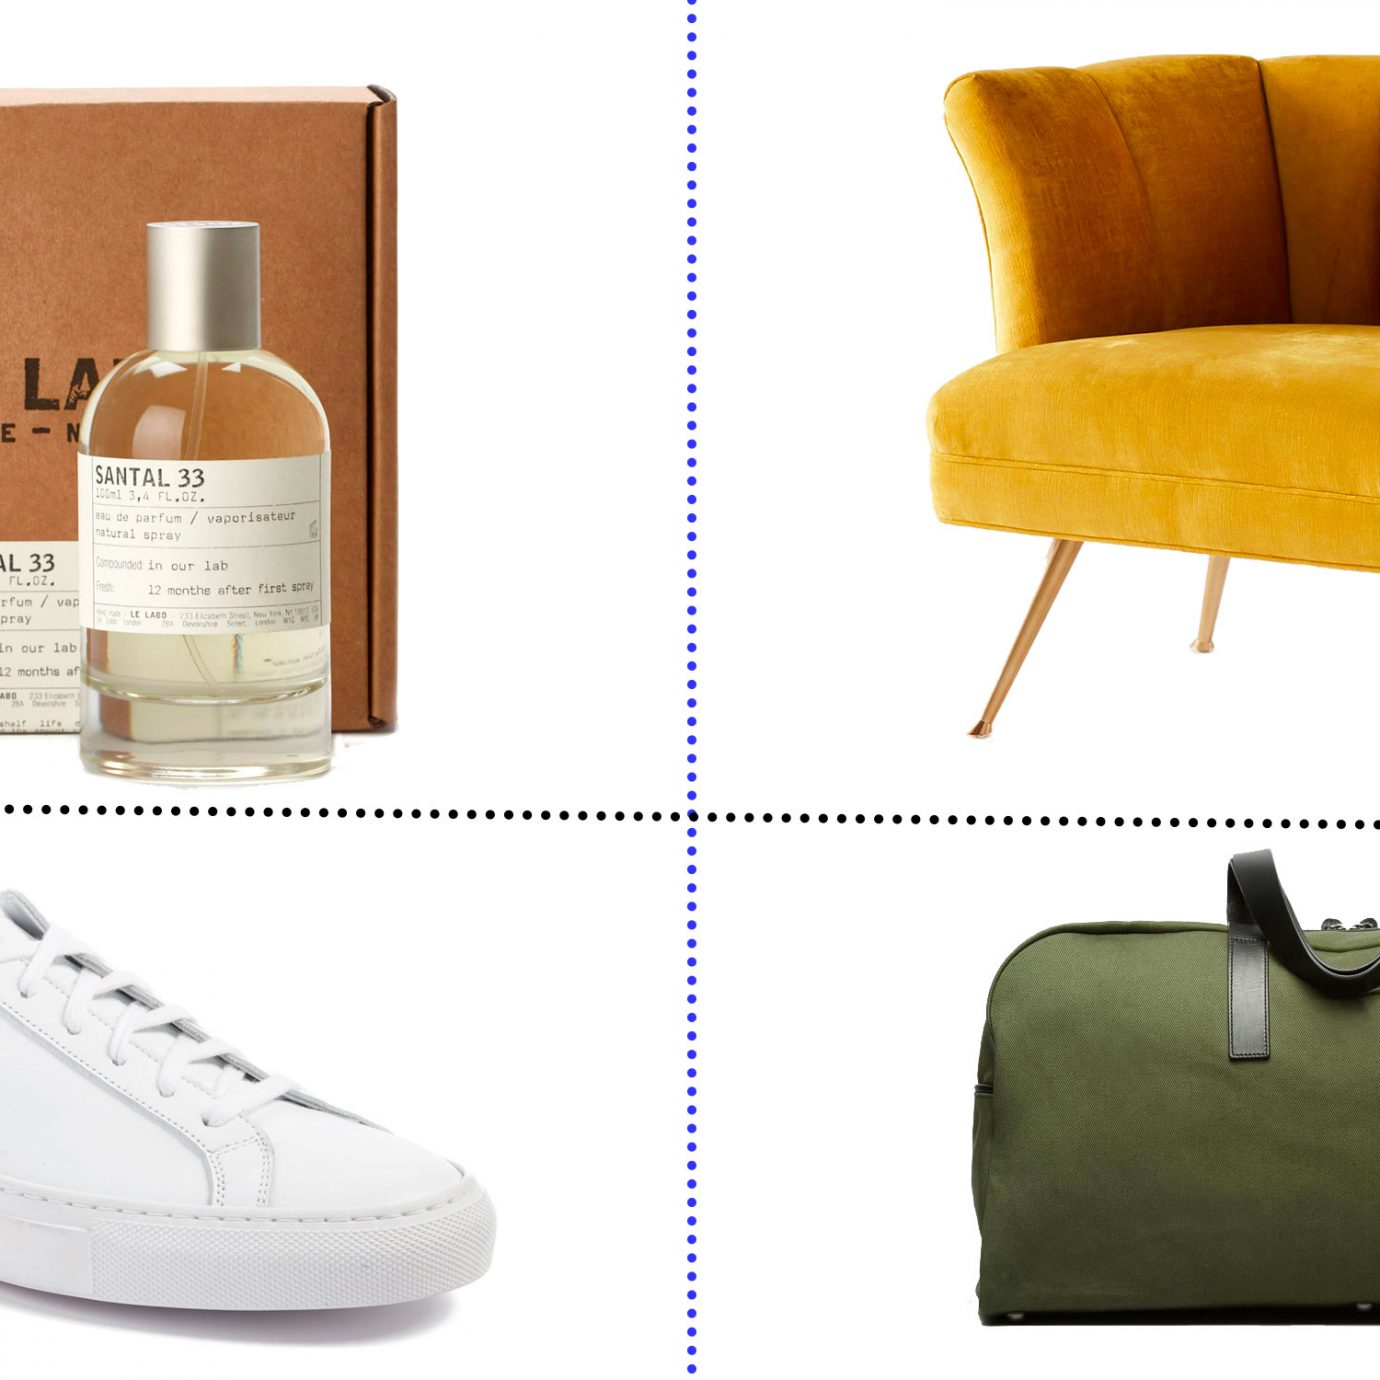 Most popular items sold on Jetsetter collage